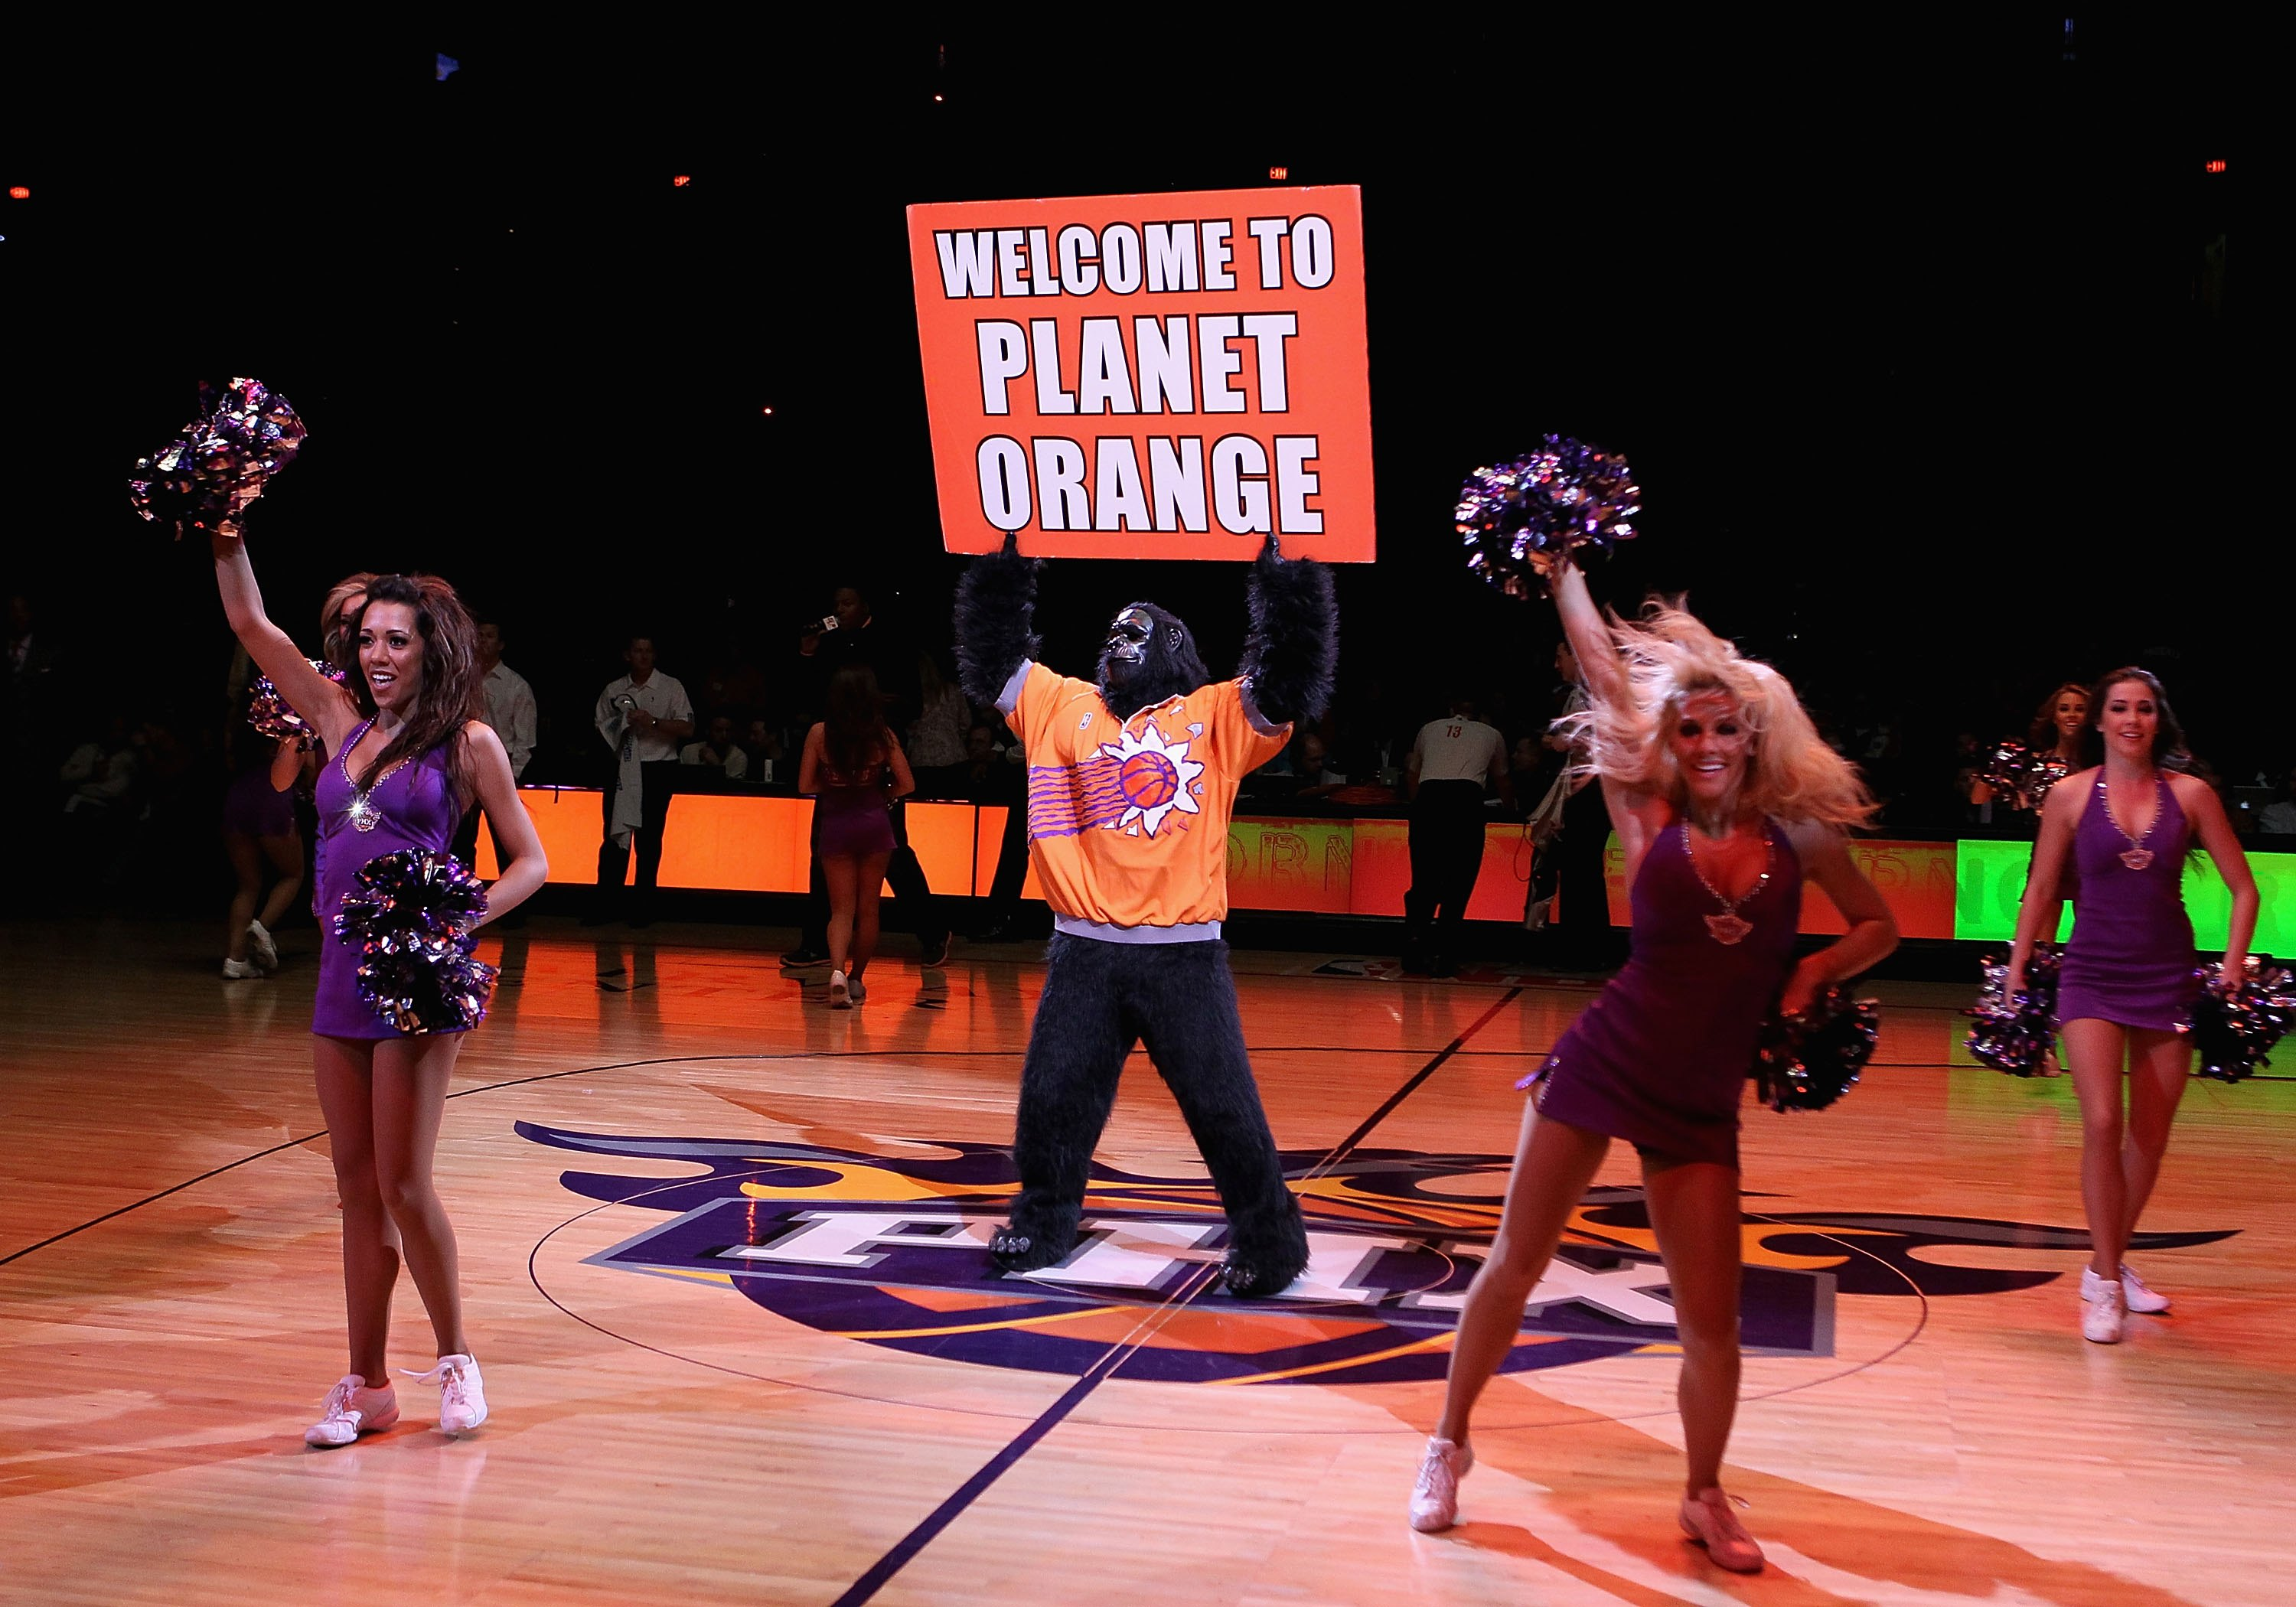 PHOENIX - JANUARY 23:  The Phoenix Suns mascot 'gorilla' performs before the NBA game against the Golden State Warriors at US Airways Center on January 23, 2010 in Phoenix, Arizona. NOTE TO USER: User expressly acknowledges and agrees that, by downloading